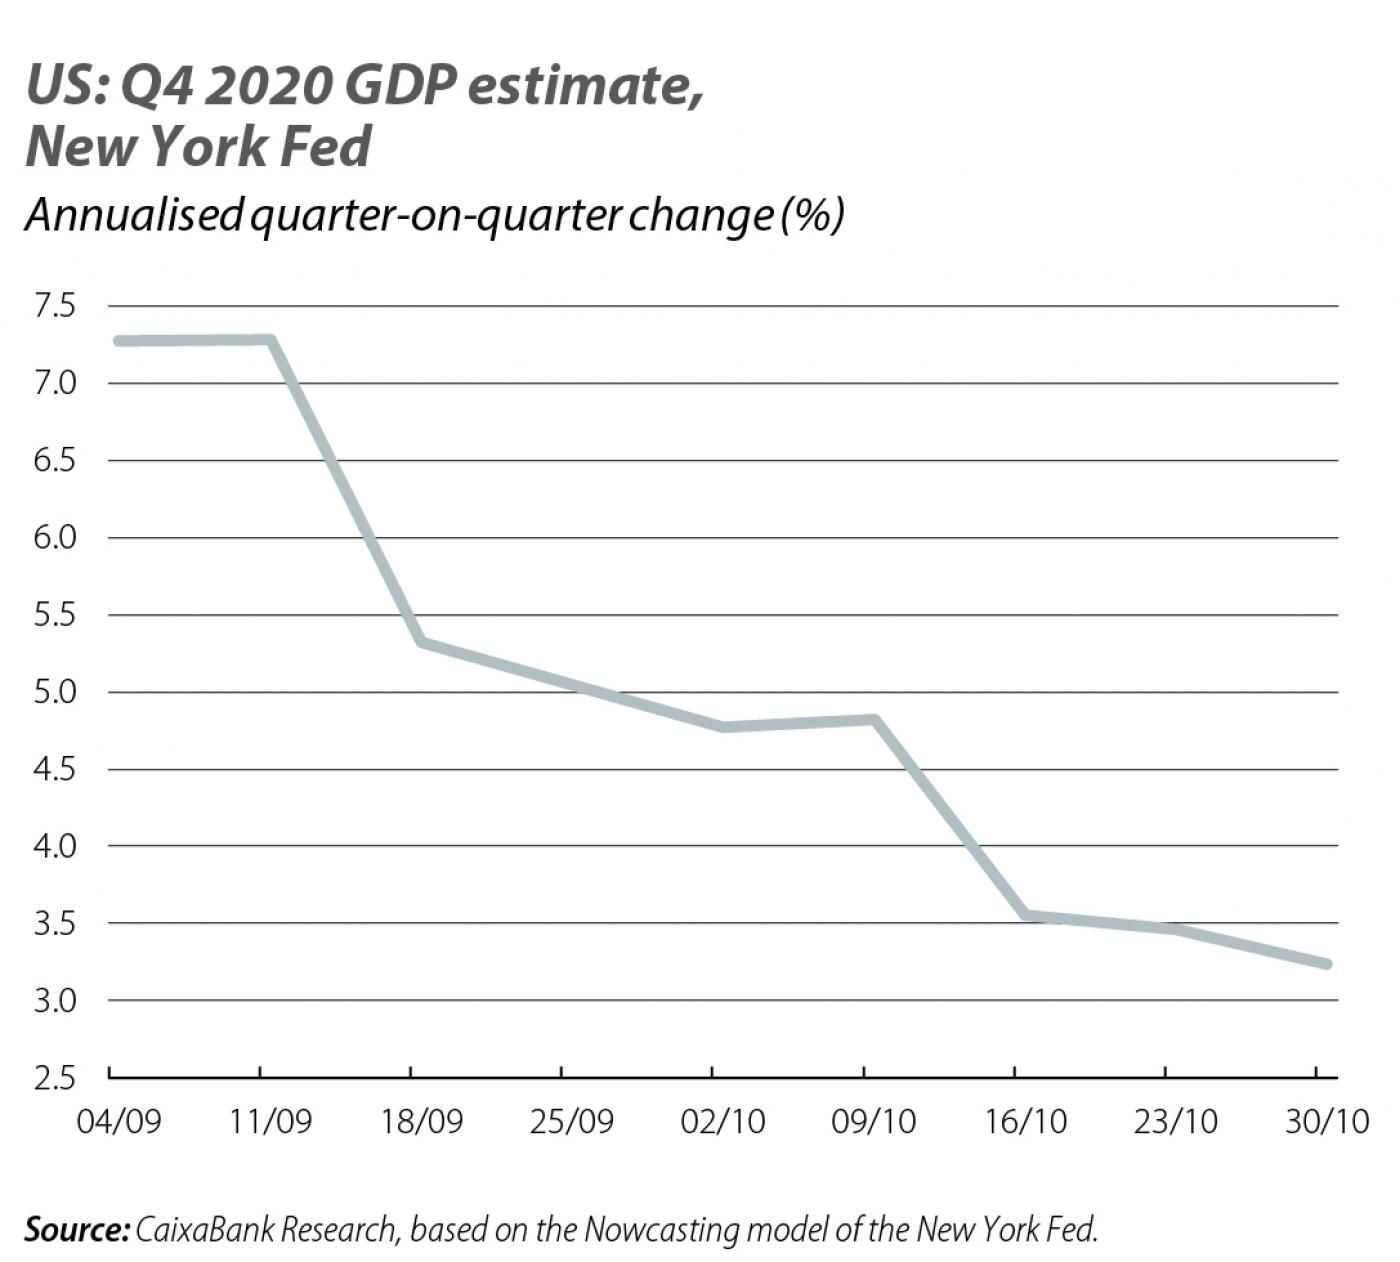 US: Q4 2020 GDP estimate, New York Fed